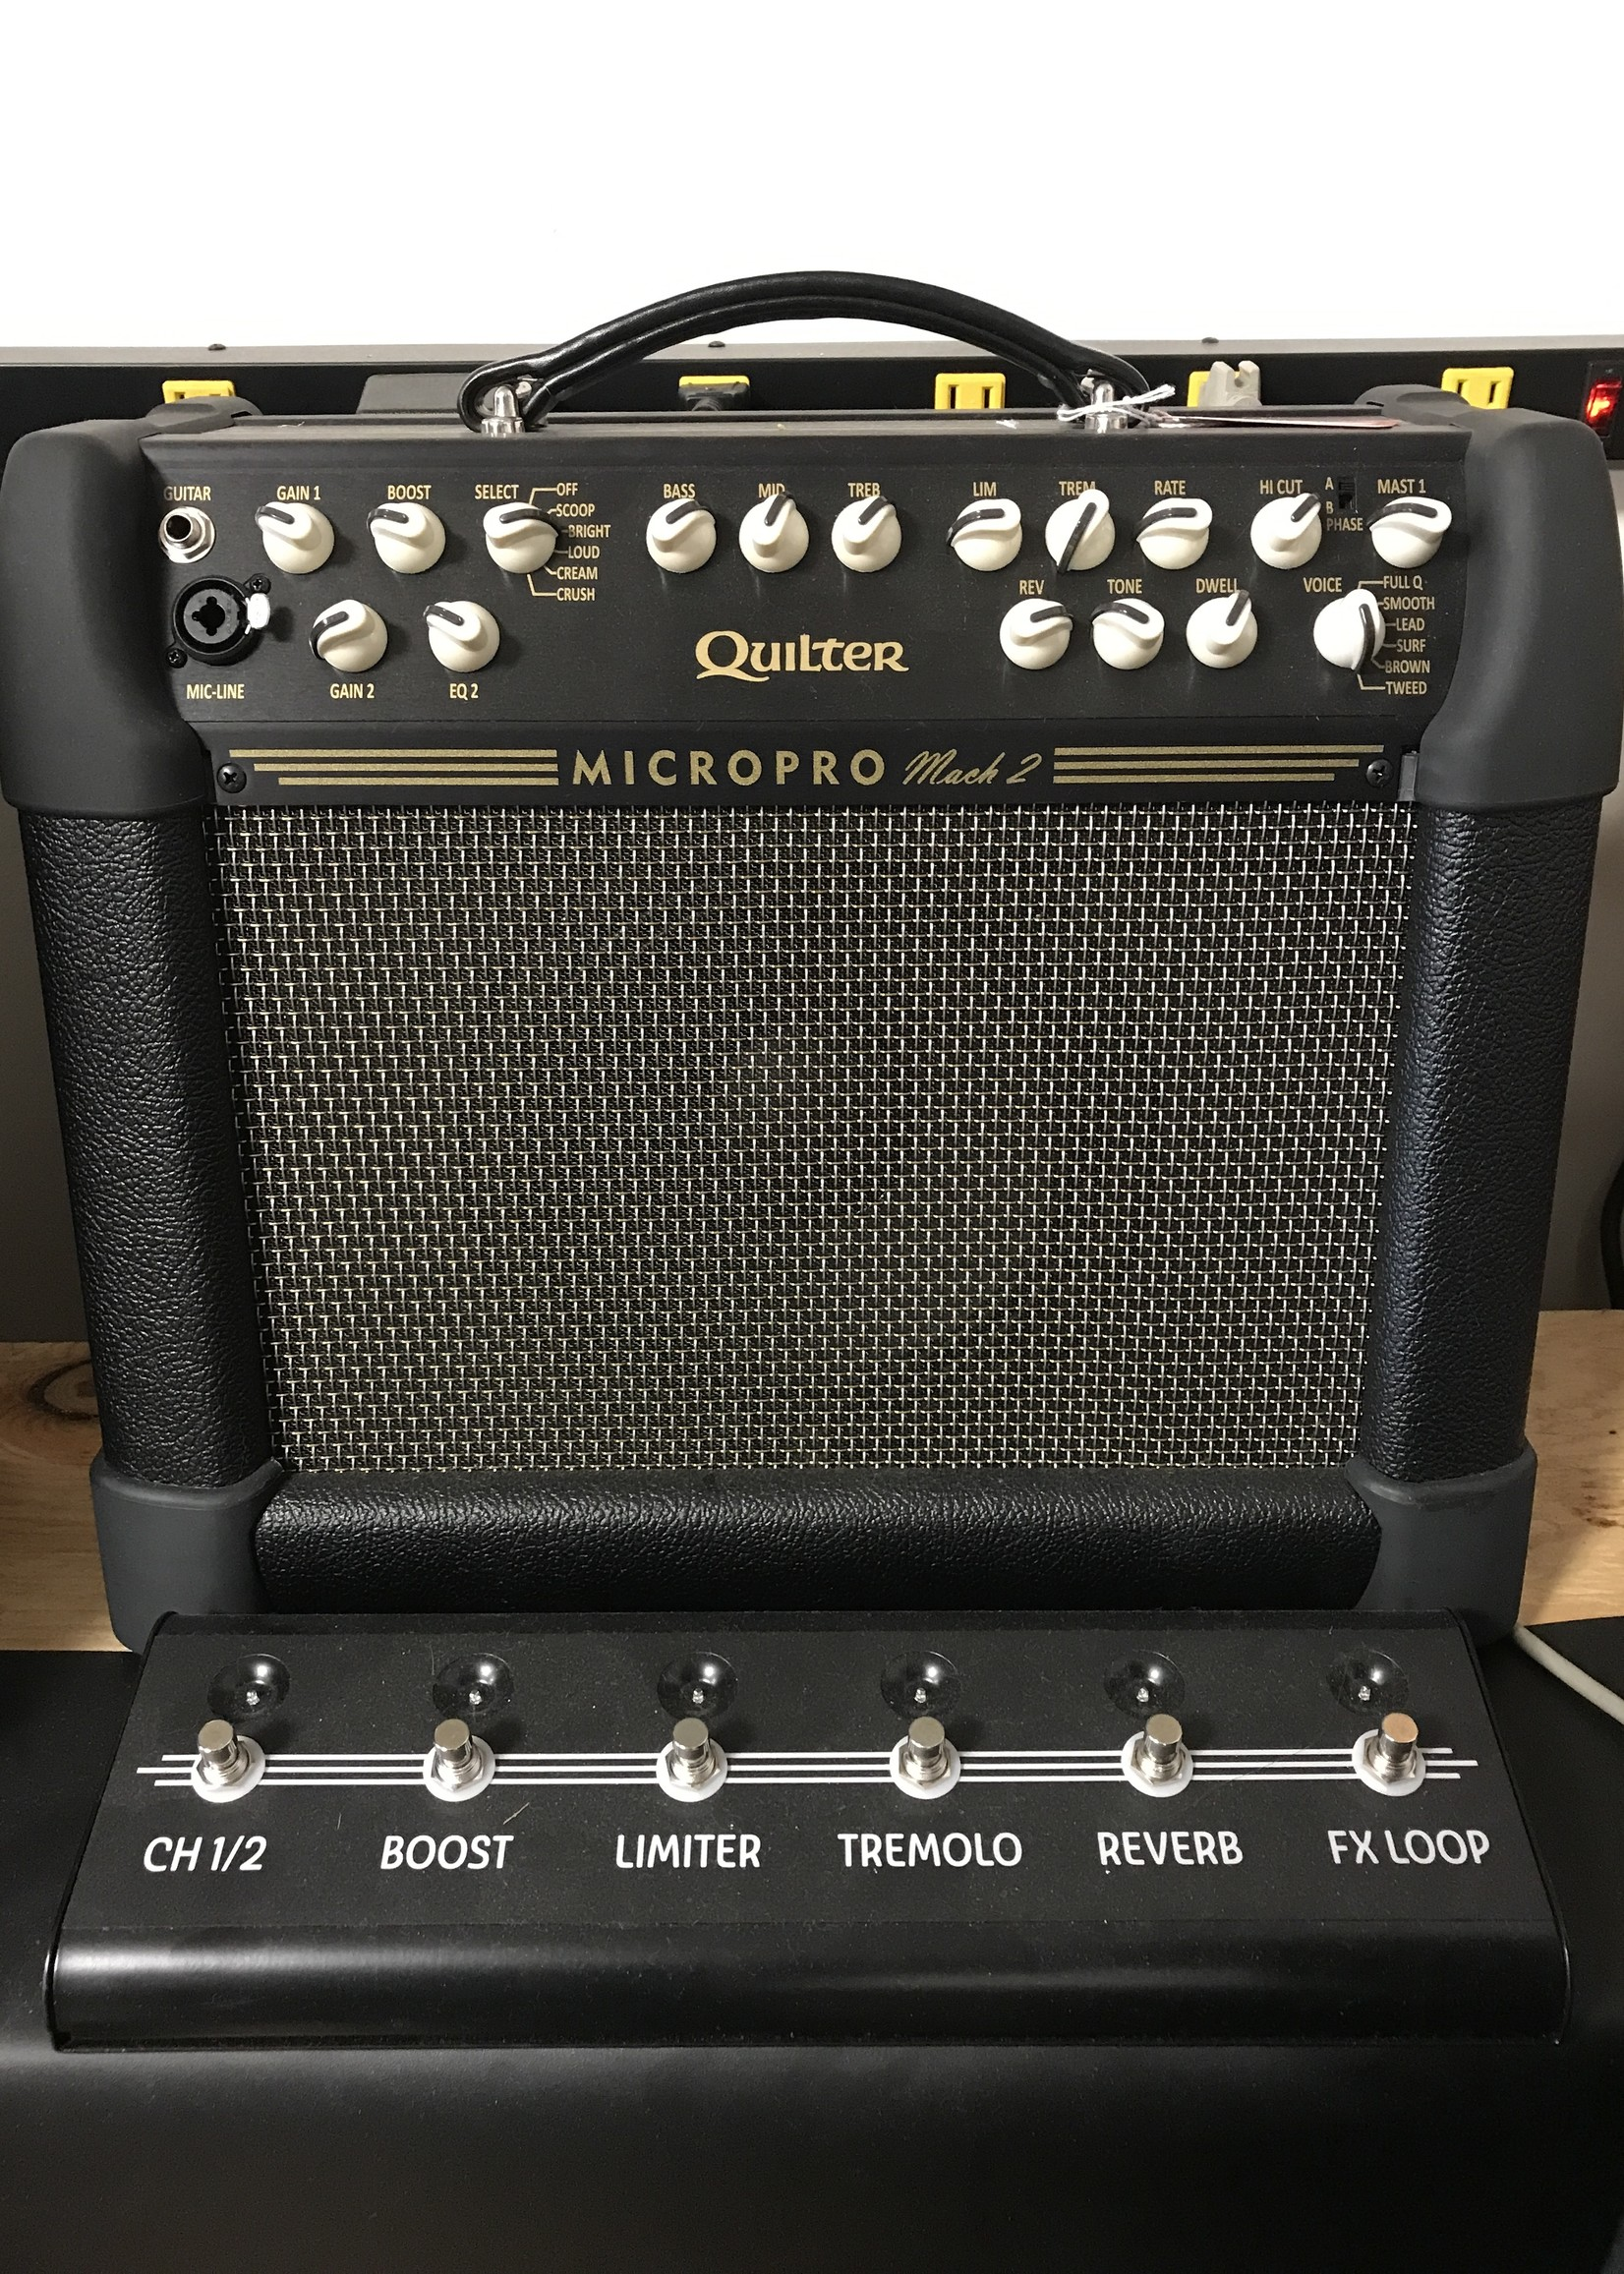 Quilter Micro Pro w Sw. RM (con)